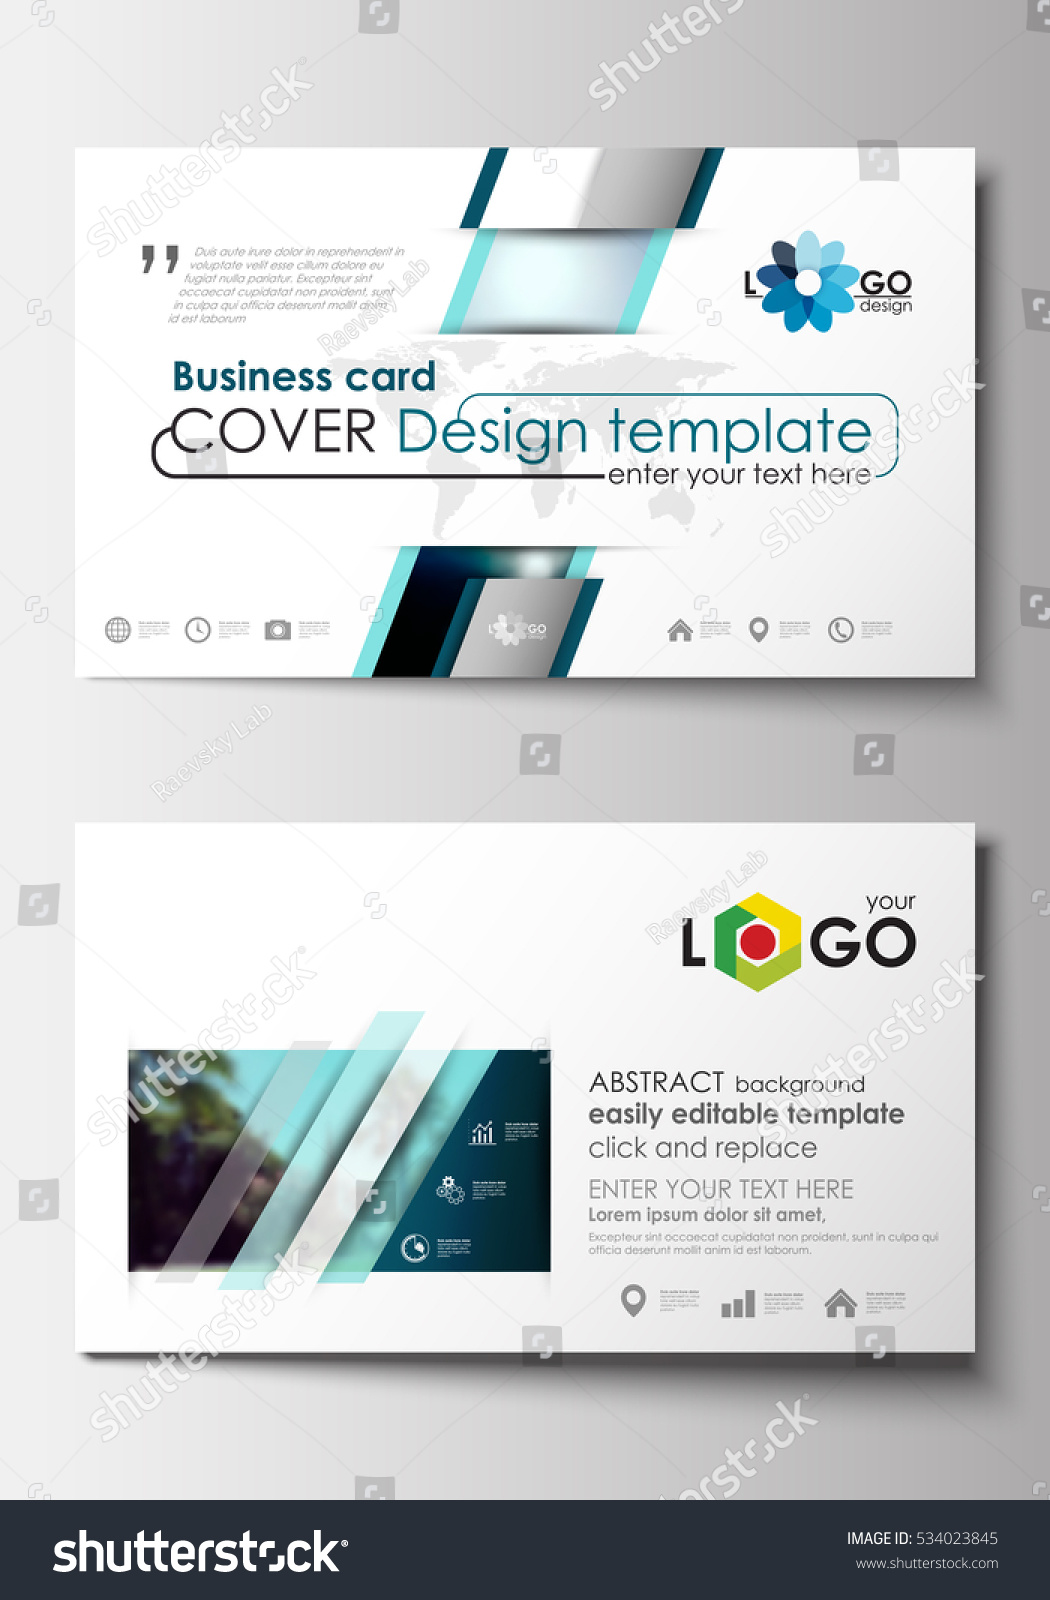 Business card templates flat design blue stock vector 534023845 business card templates flat design blue color travel decoration layout easy editable vector template magicingreecefo Choice Image